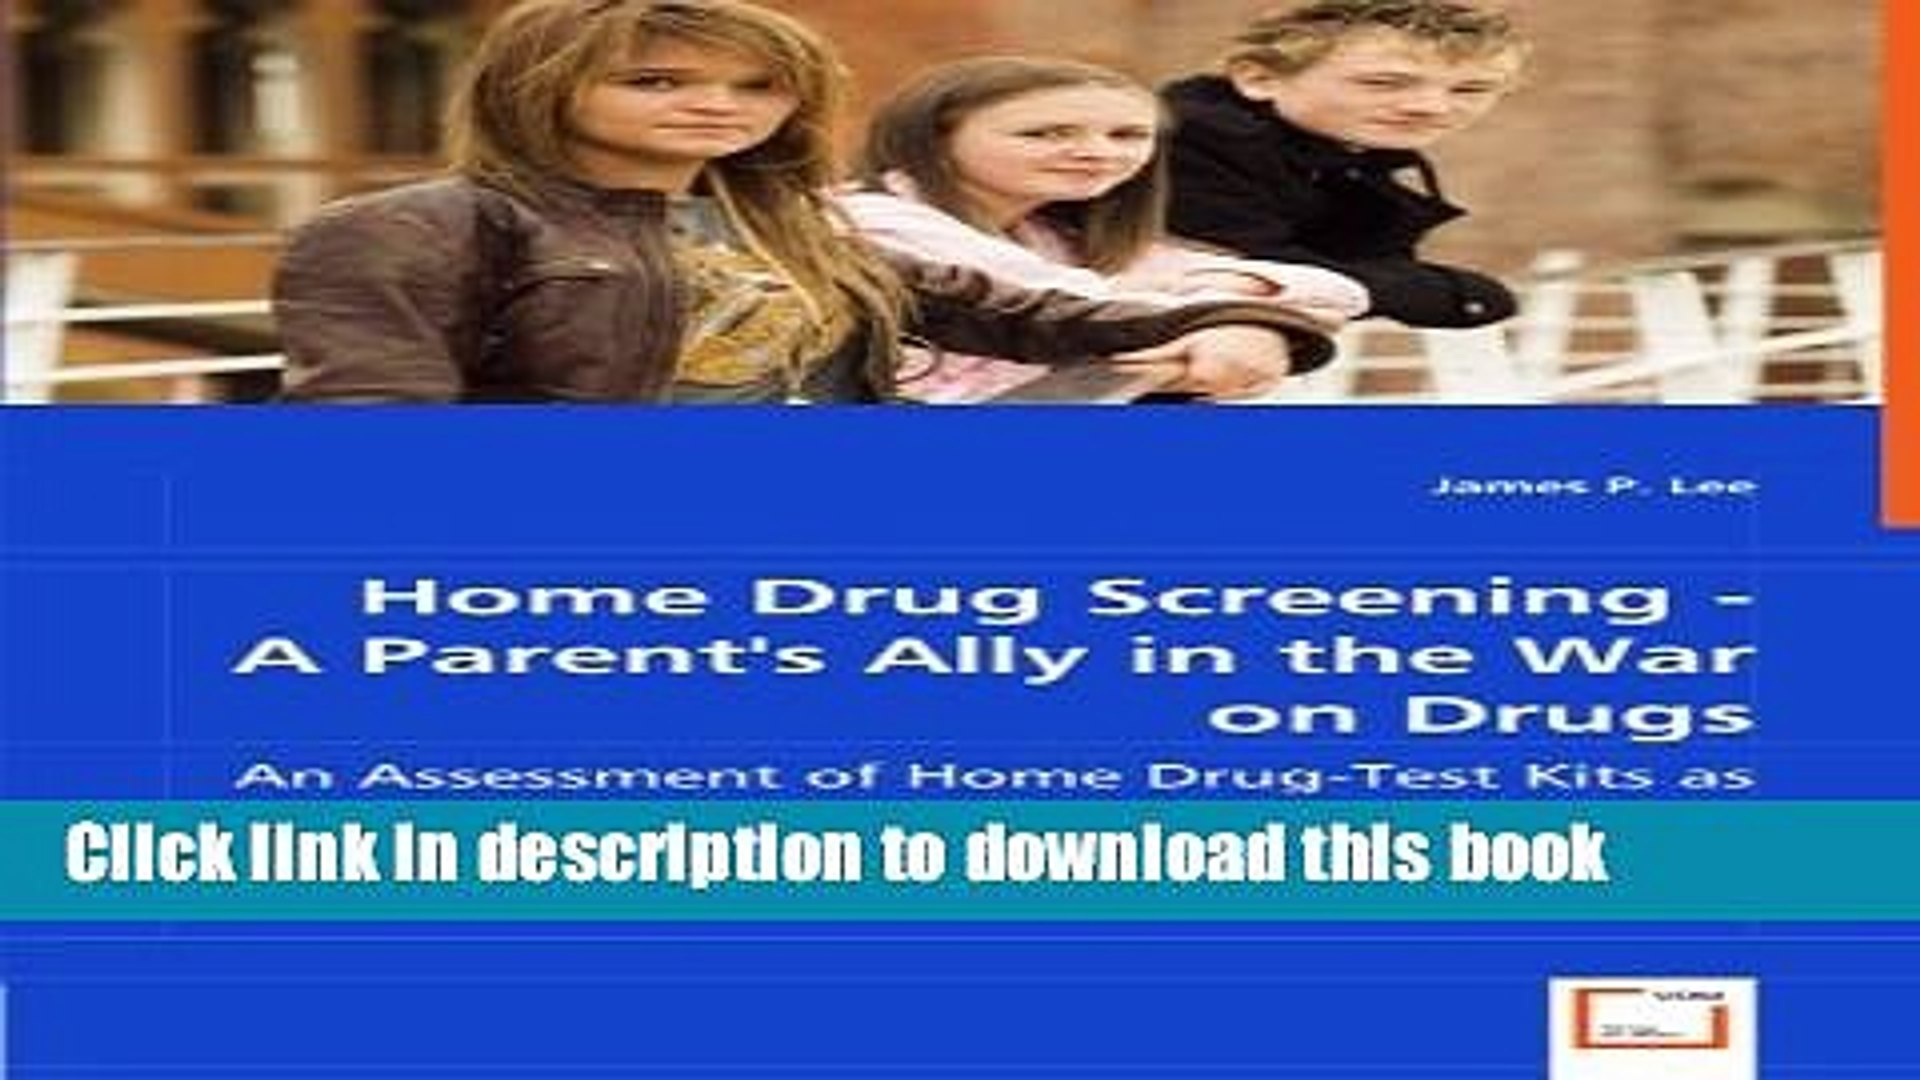 [PDF] Home Drug Screening - A Parent  s Ally in the War on Drugs: An Assessment of Home Drug-Test